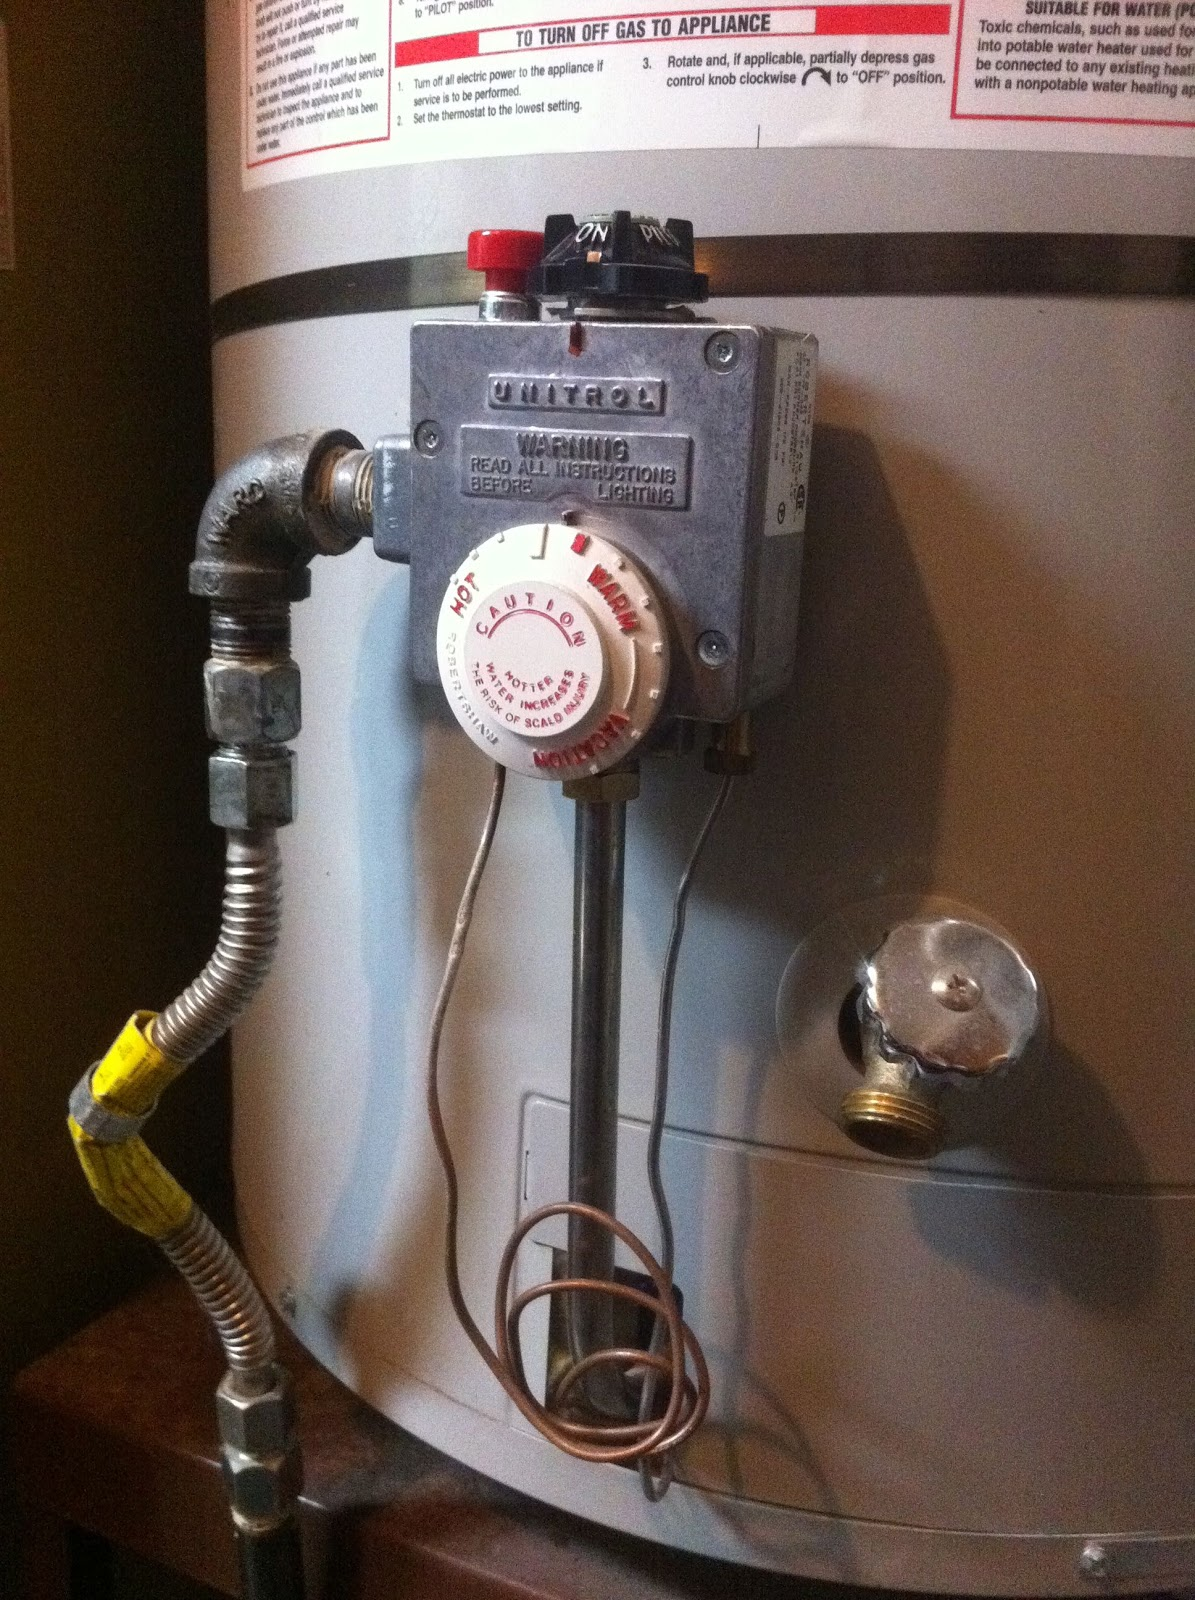 Science Of Everyday Stuff That Wire In Your Hot Water Heater Sci Wiring A Portion The Thermocouples Copper Can Be Seen Coiled At Bottom This Photo From There It Travels Up Into Box Contains Magnet